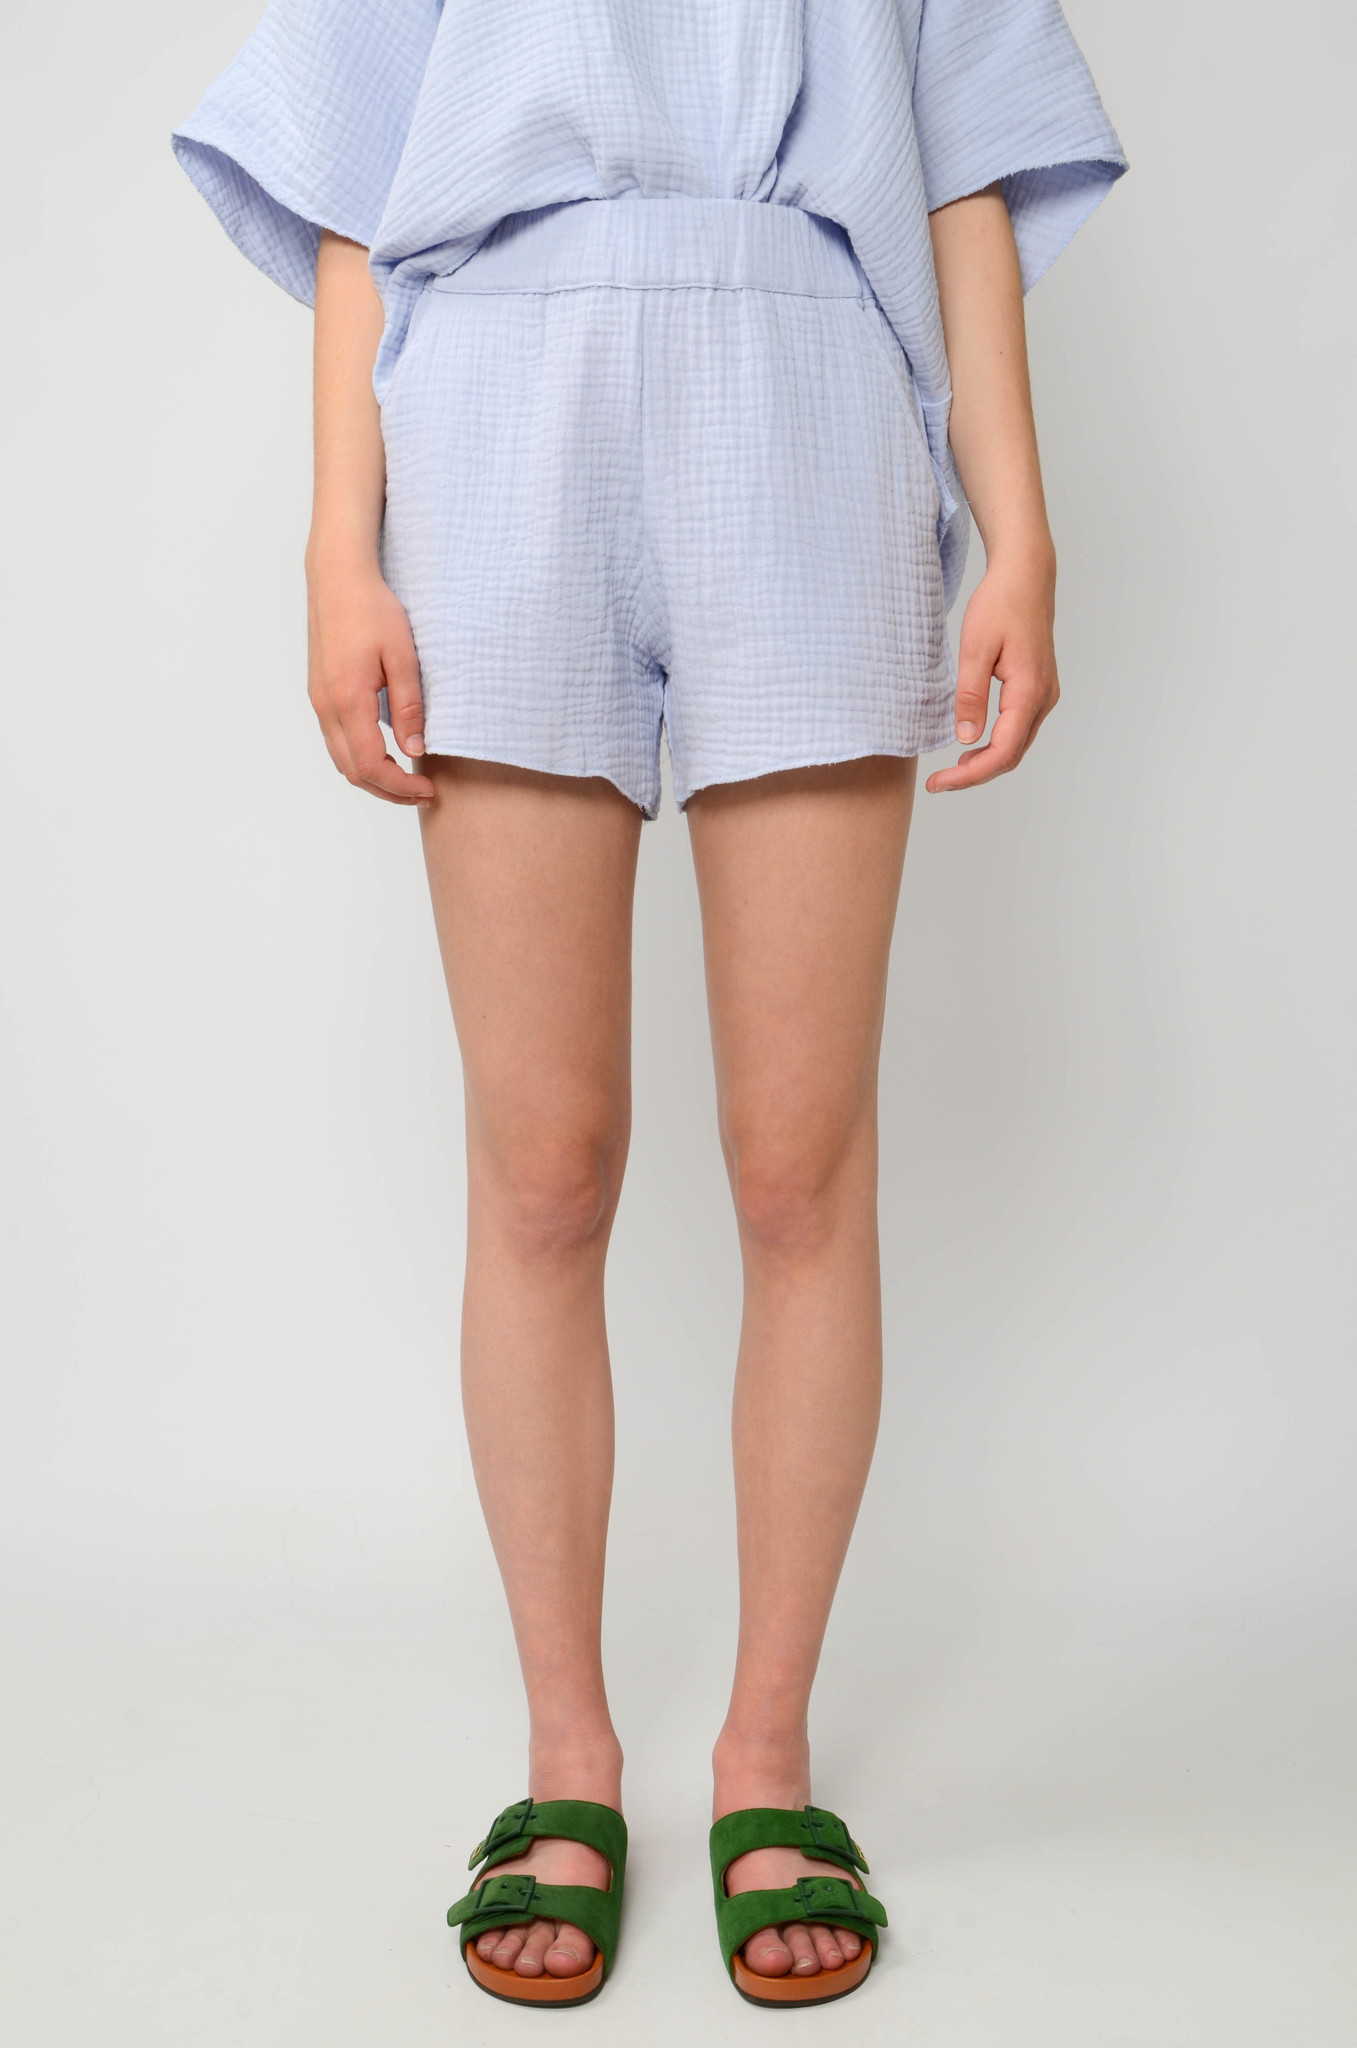 DATAI SHORTS IN ICE BLUE-1